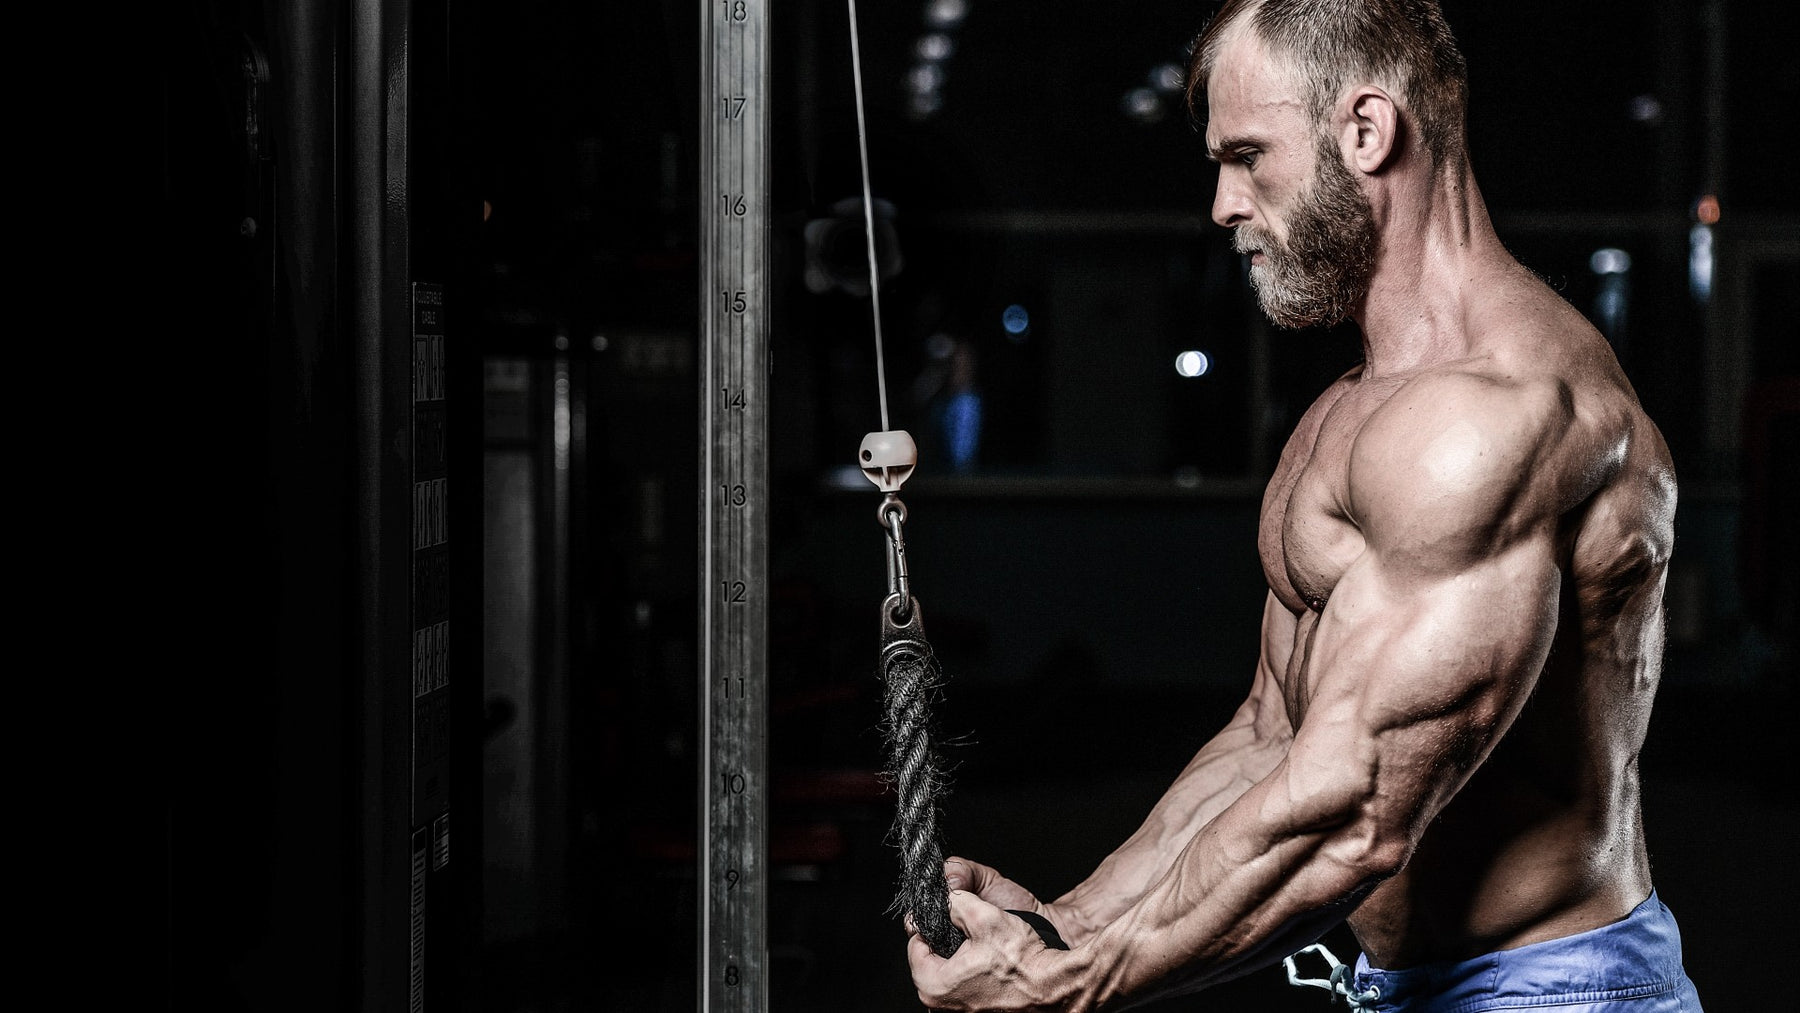 Discover The Best Rep Range For Muscle Growth